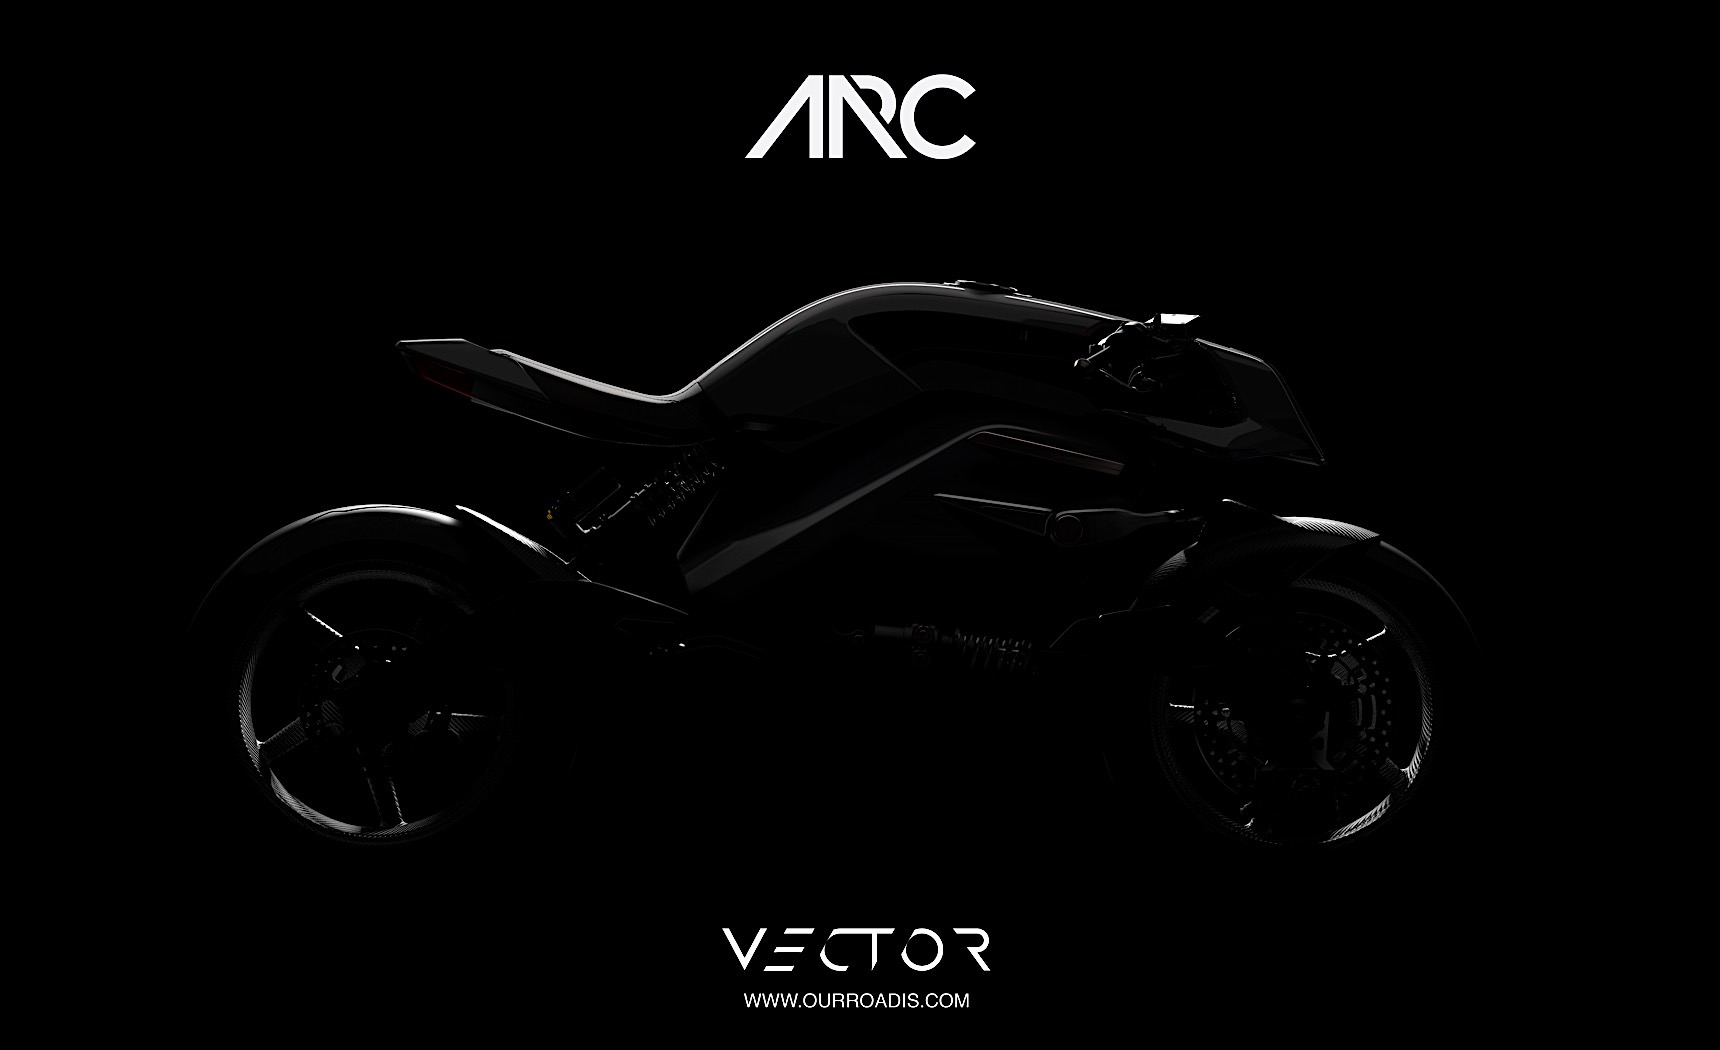 Arc Vector Electric Cafe Racer to Bring Agressive Silhouette to EICMA 2018 - autoevolution